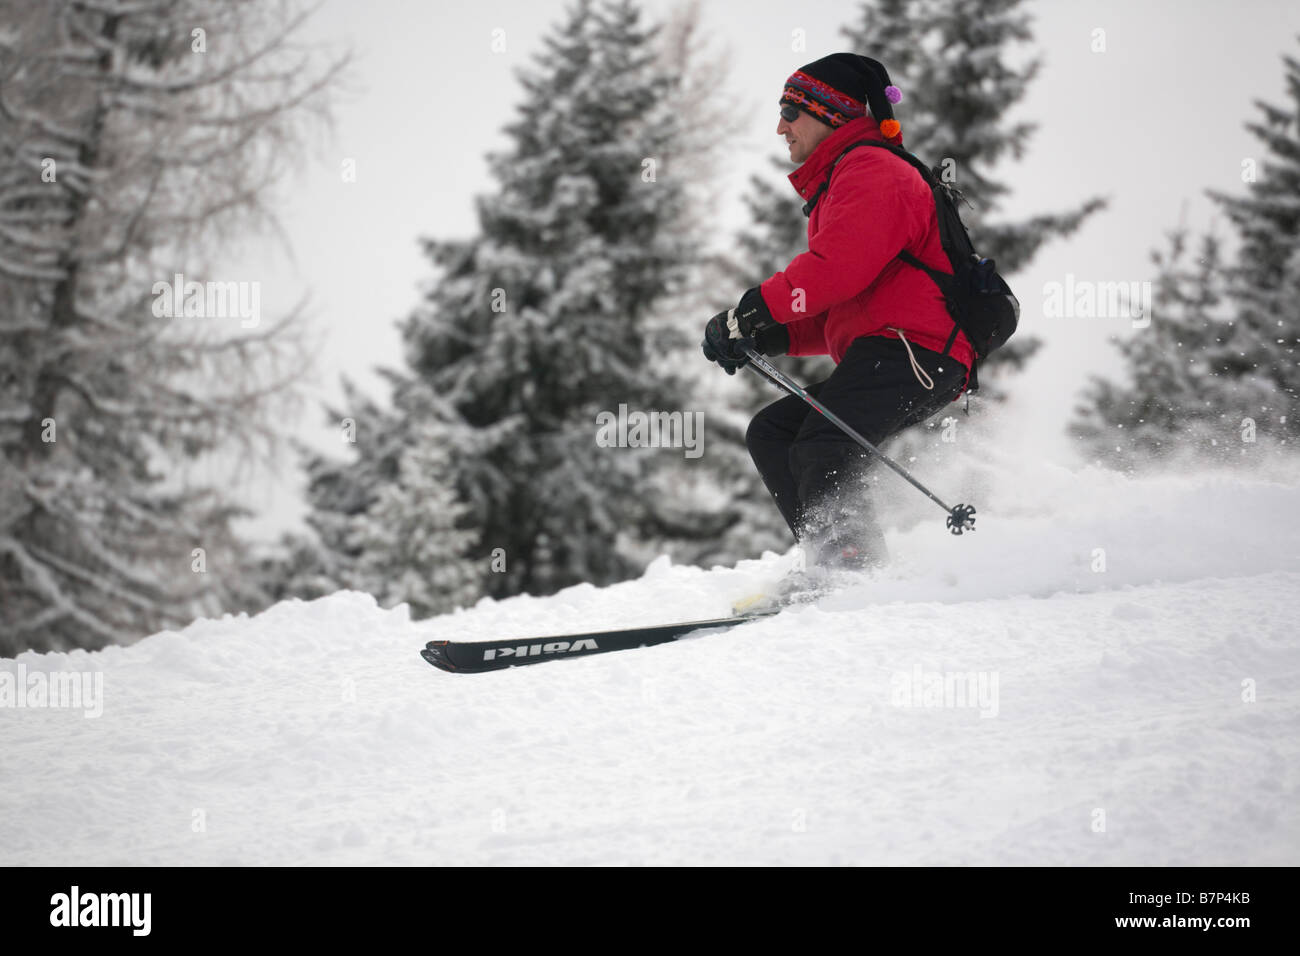 Male skier wearing a red jacket skiing fast down a mountain slope in powder snow on piste in Austrian Alps. Austria, - Stock Image